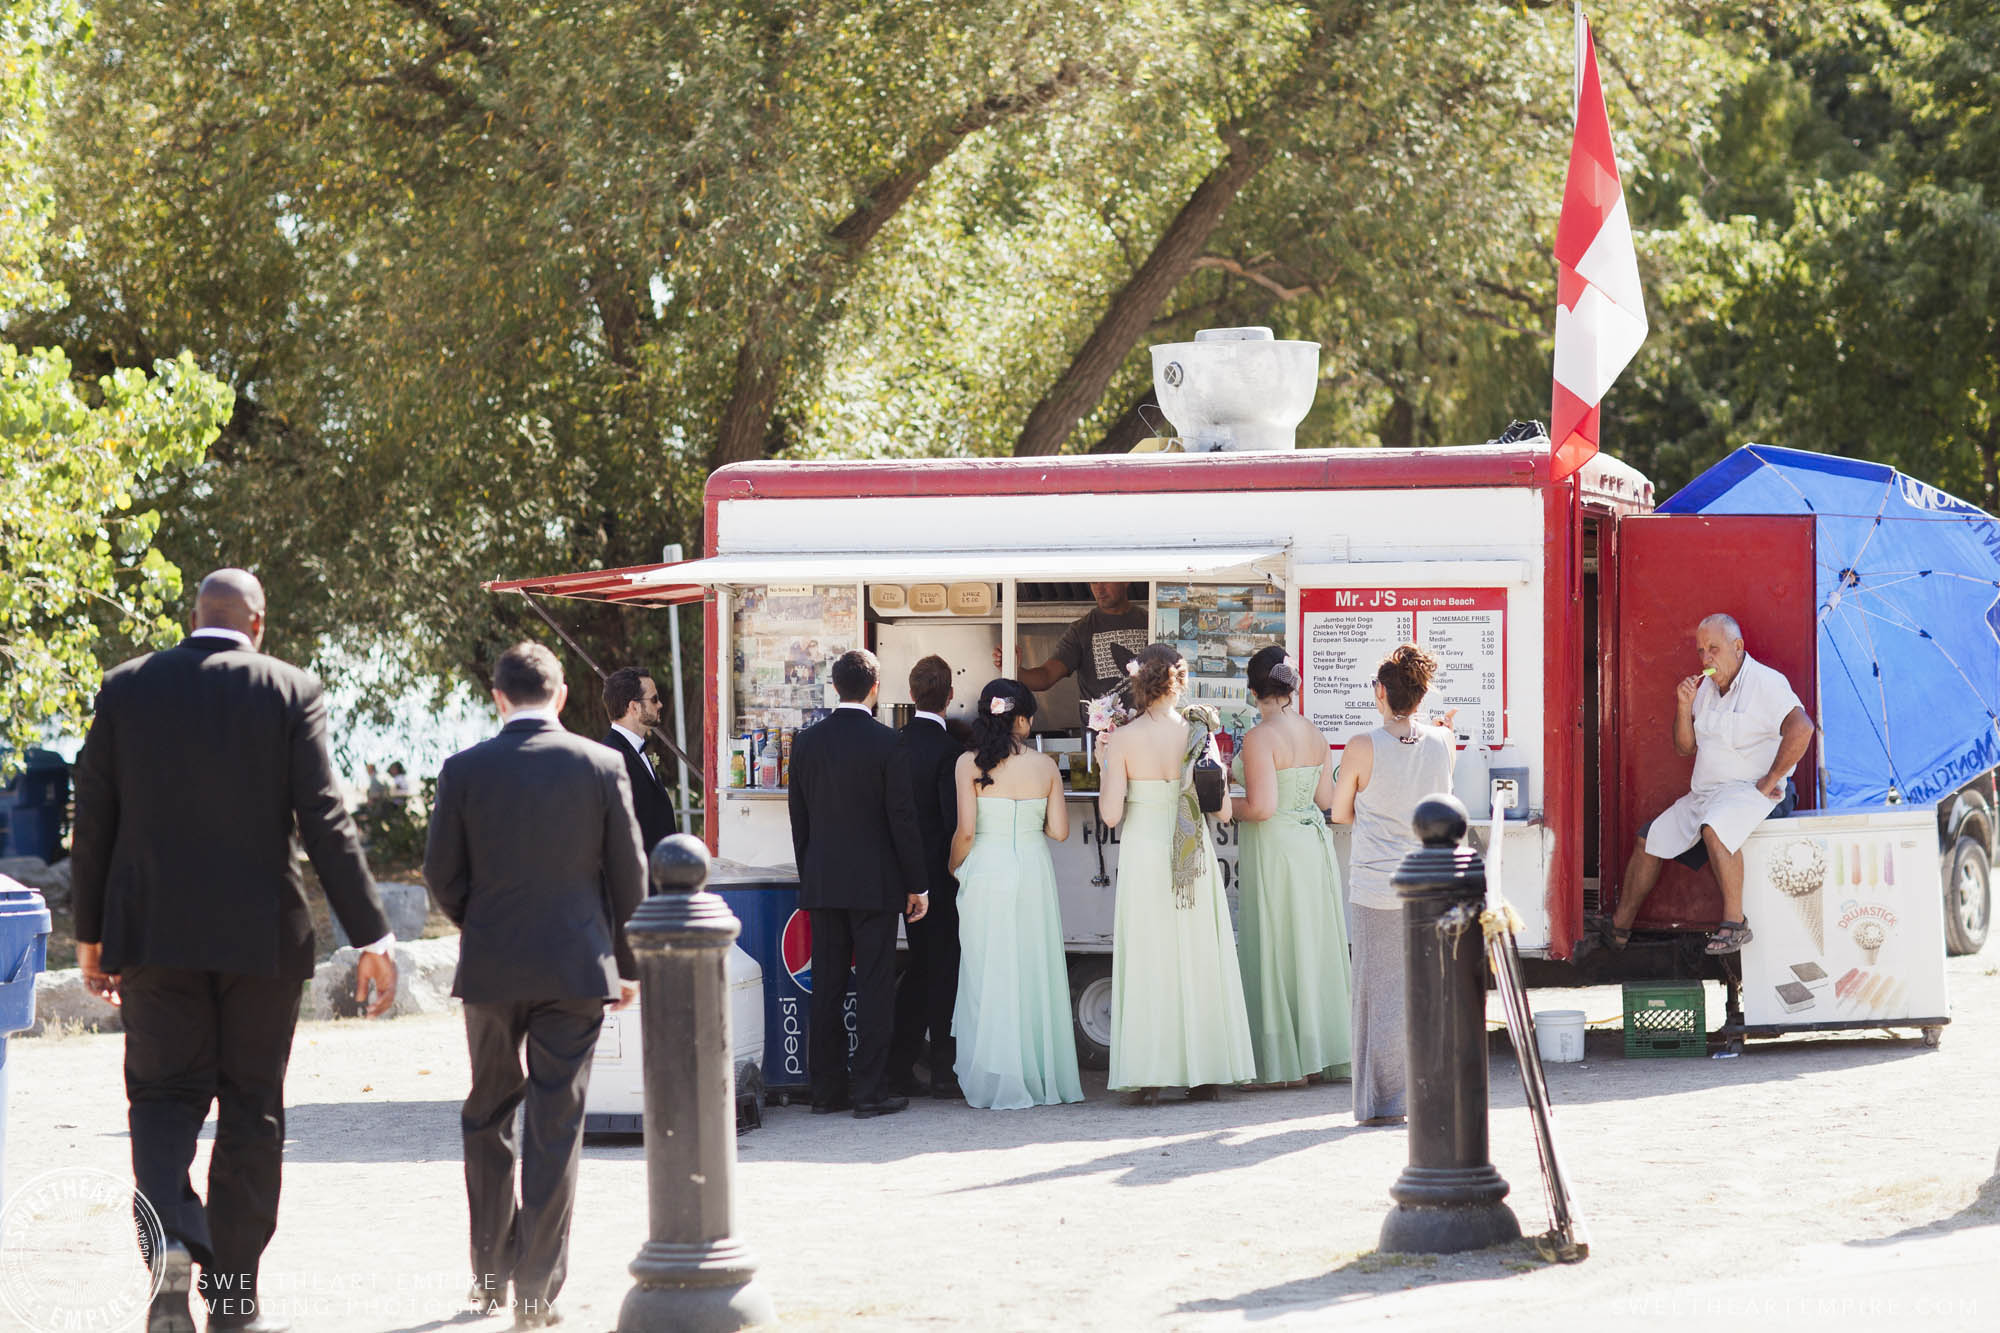 Bridal party visiting a wedding day food truck.